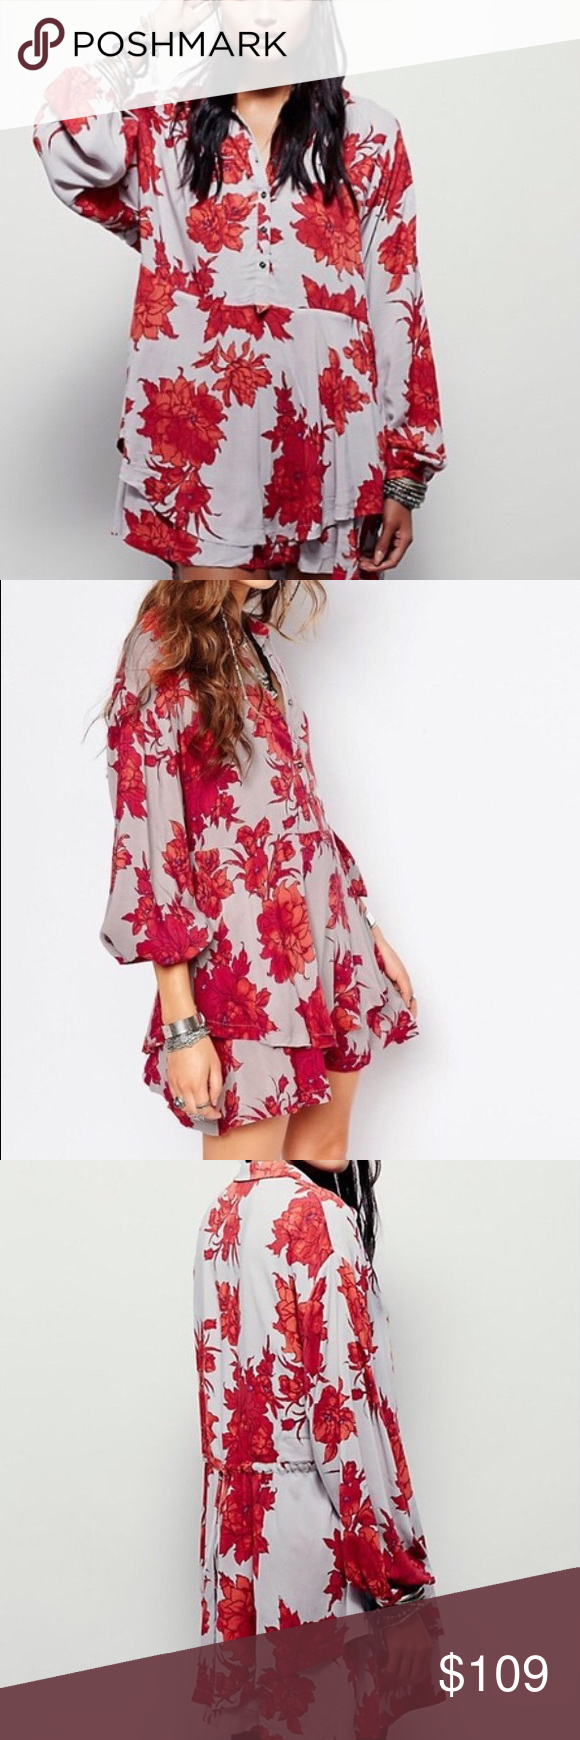 🌷FINAL MARKDOWN!🌷Free People Printed Tunic Dress NWT. Didn't like the way it fit me, so decided to sell it. My loss is your gain. Free People Dresses